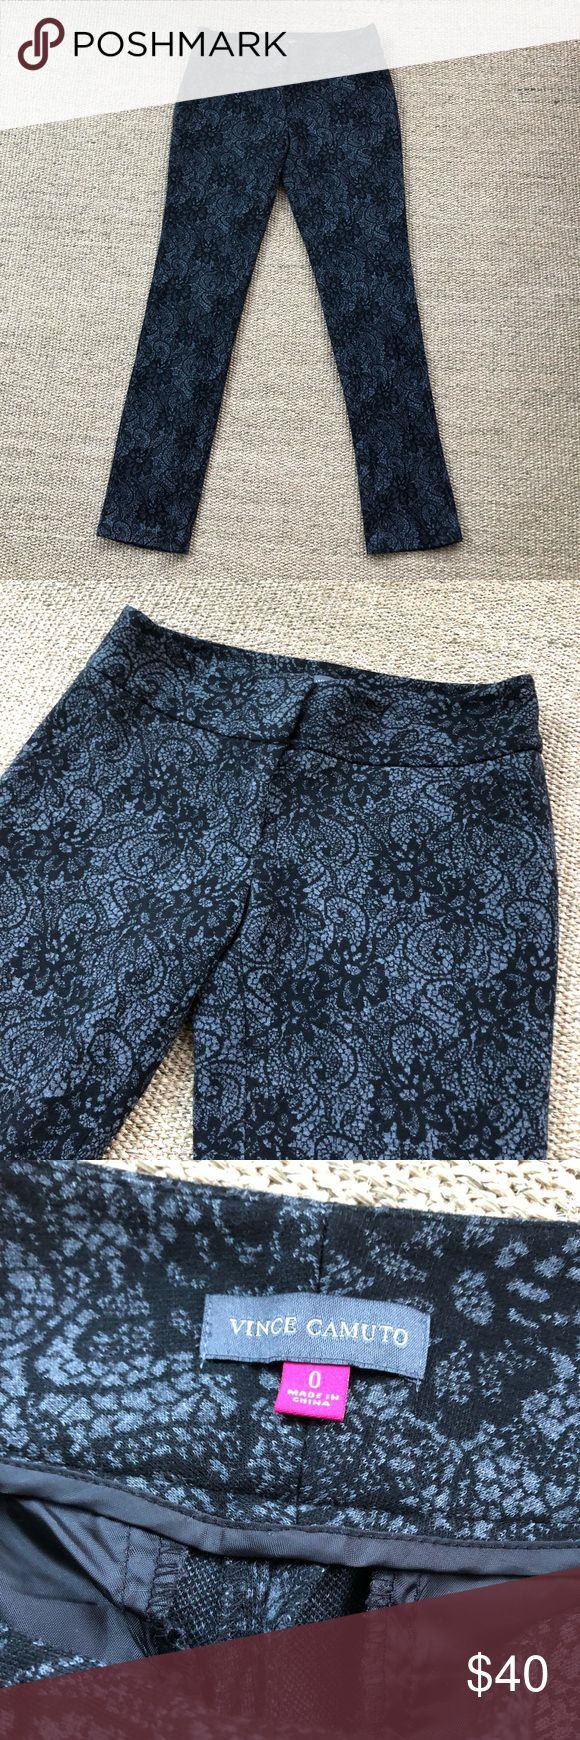 """Vince Camuto Gray Lace Pattern Slacks Pants 0 Gently worn condition. No known flaws. Waist is 14.5"""" across, length is 36.5"""", inseam is 29"""" and rise is 8"""". 🐾 Pet-friendly, smoke-free home. 🚫 No trades. No holds. 📦 Fast shipping! 🙋🏻 Considering all reasonable offers! Vince Camuto Pants Ankle & Cropped"""